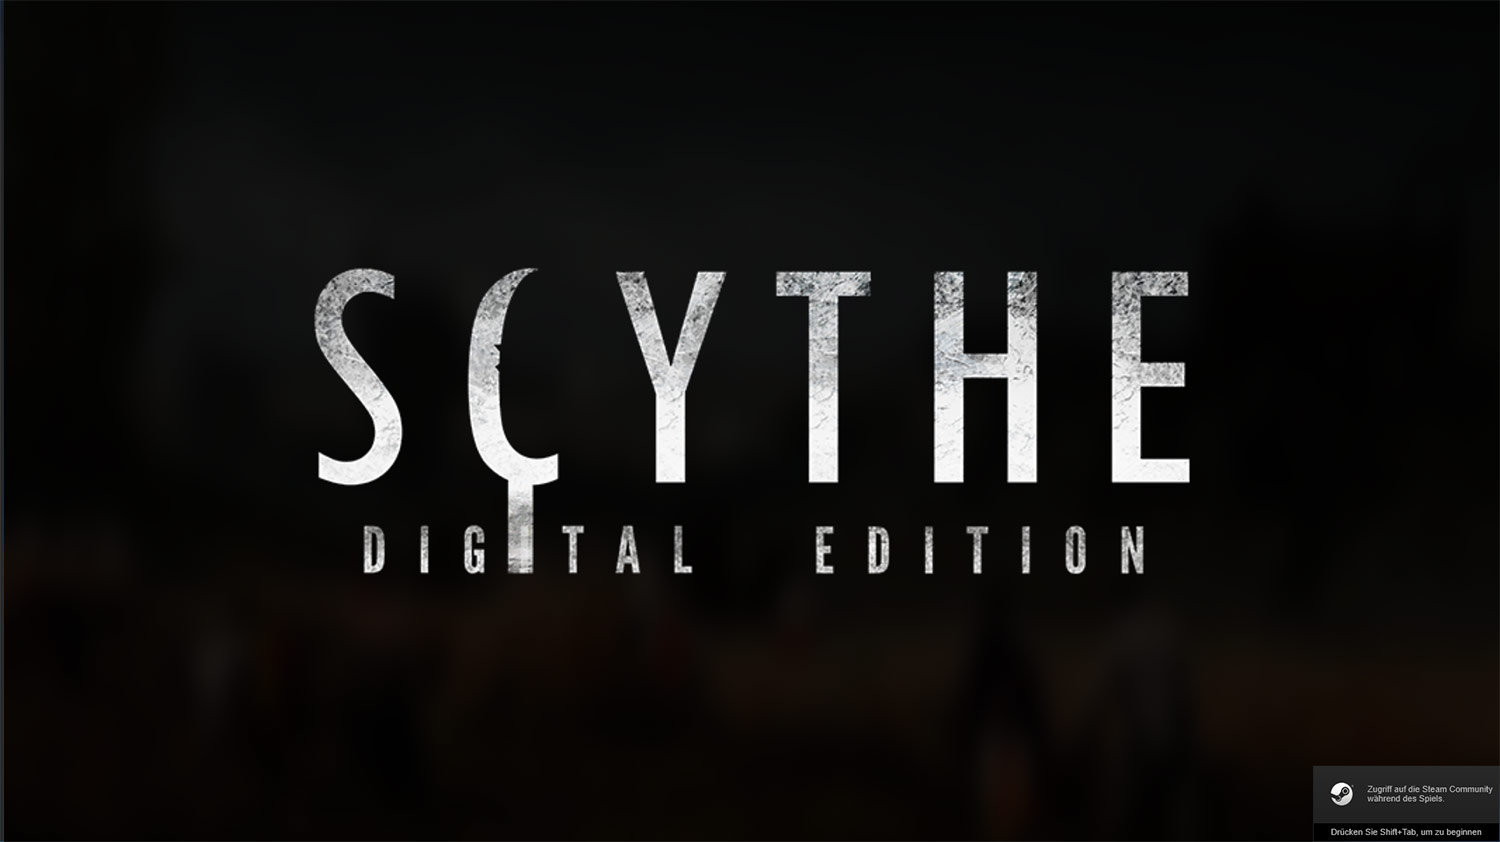 Scythe Digitale Version – Großes Update